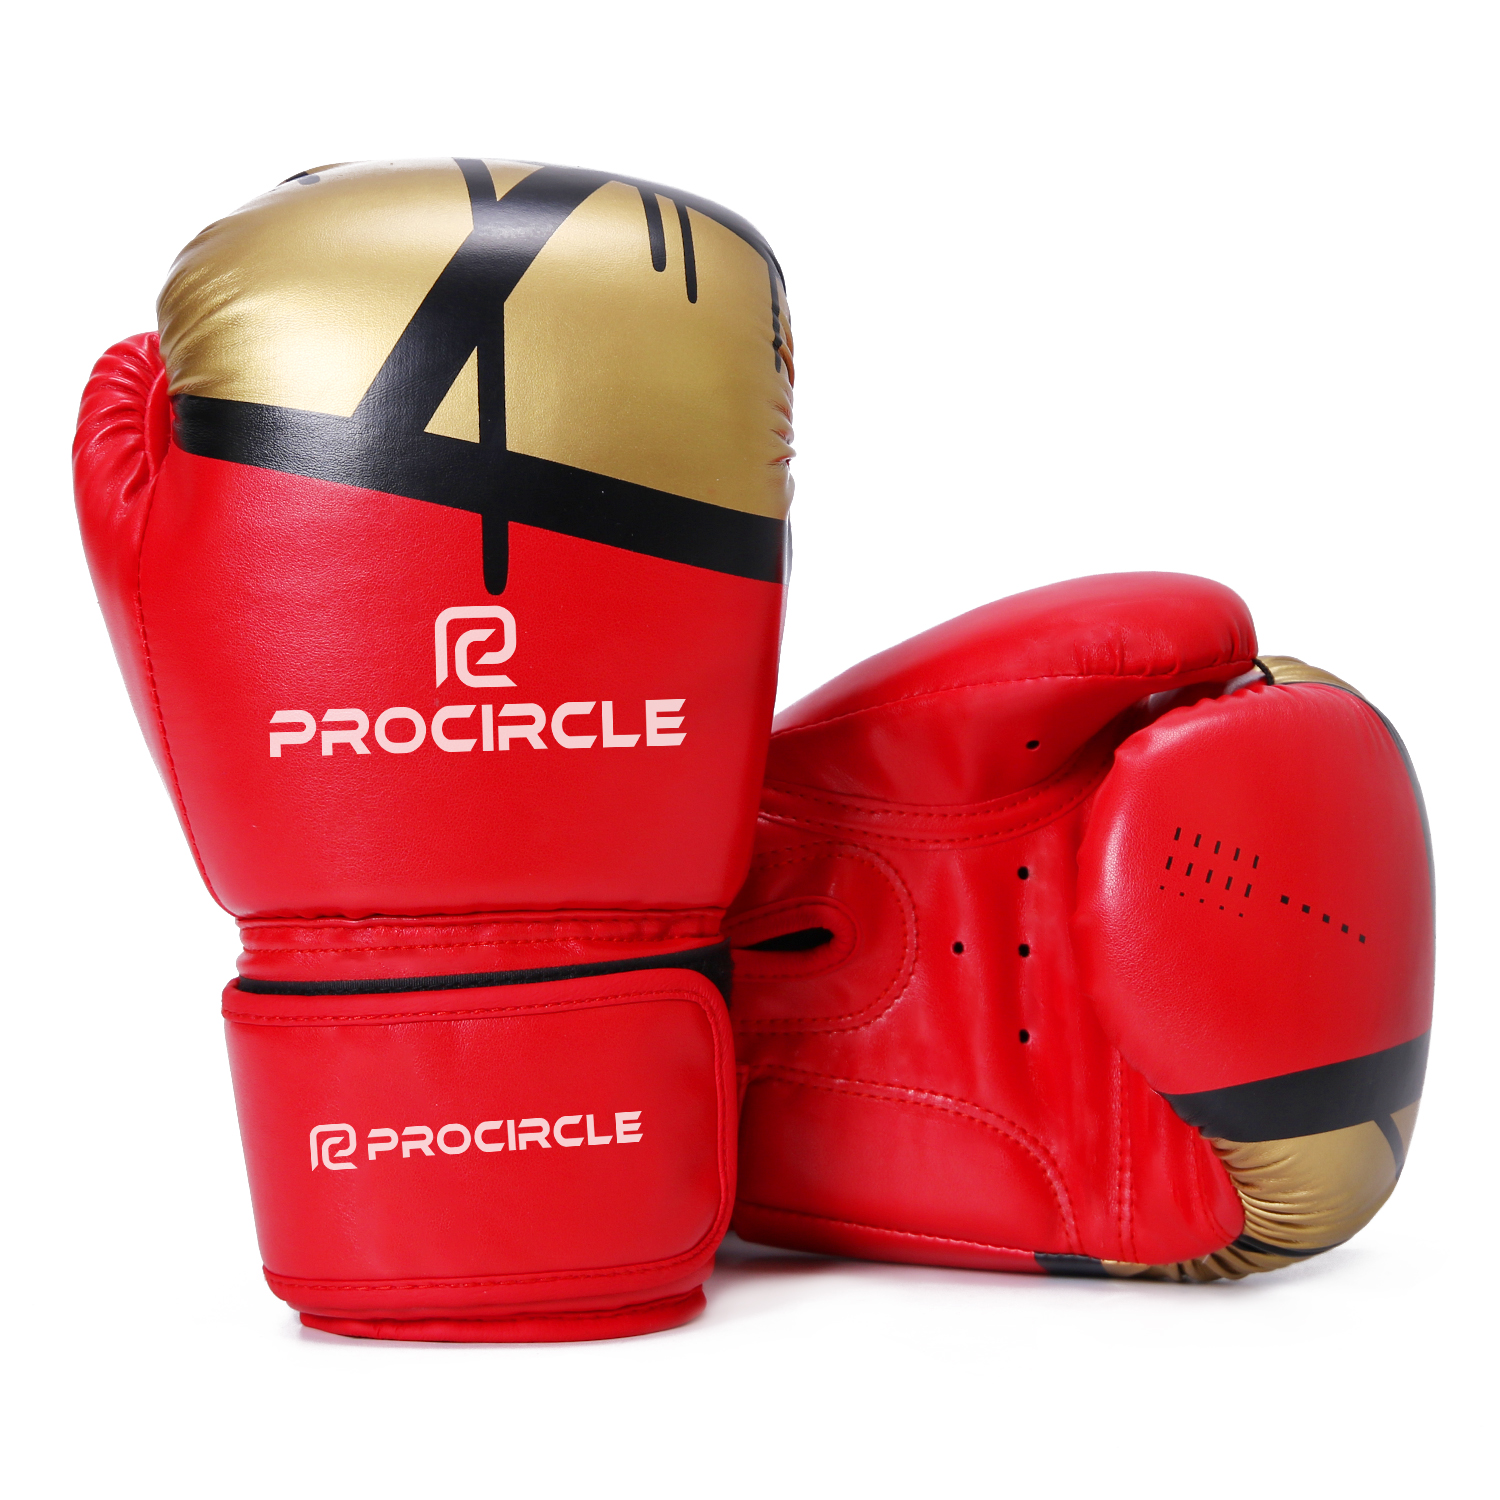 a2916d420 China leather boxing gloves wholesale 🇨🇳 - Alibaba